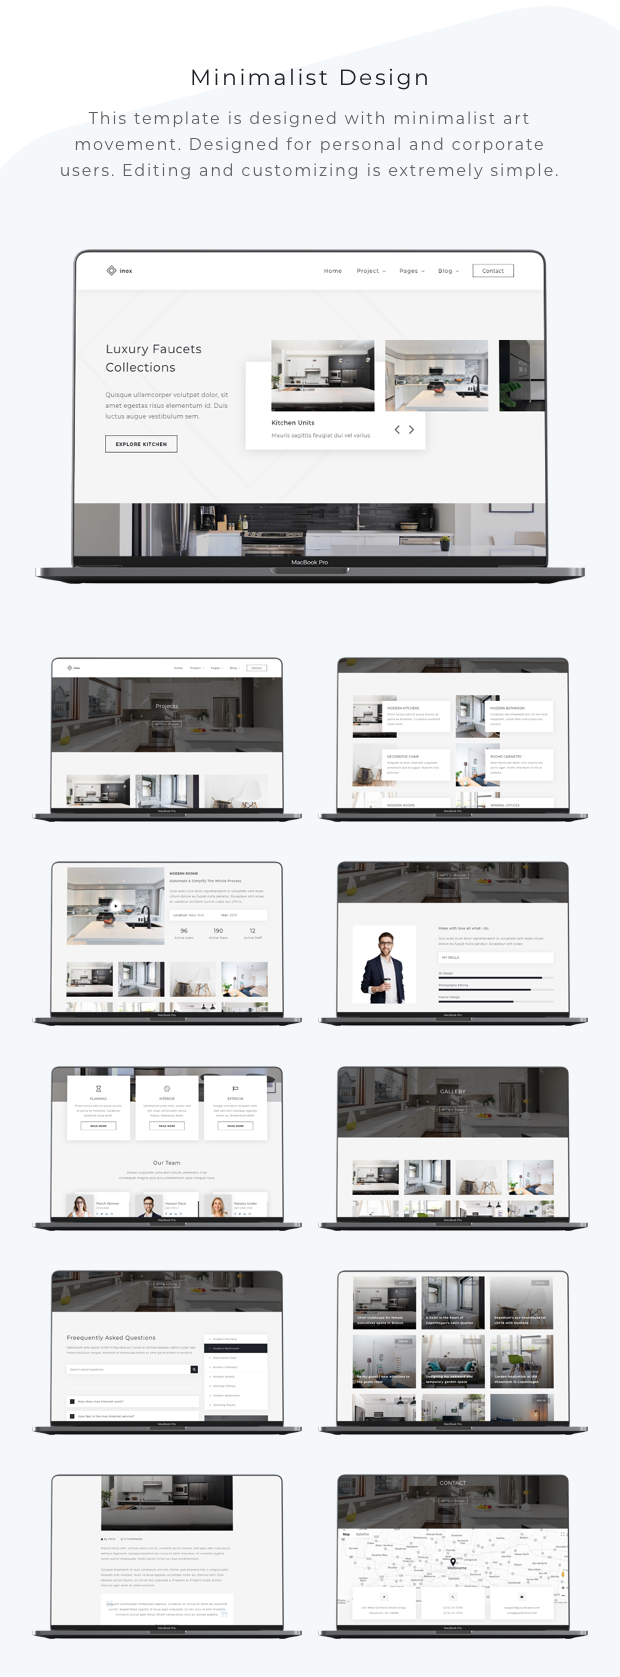 inox - Kitchen & Interior Design Template - 1